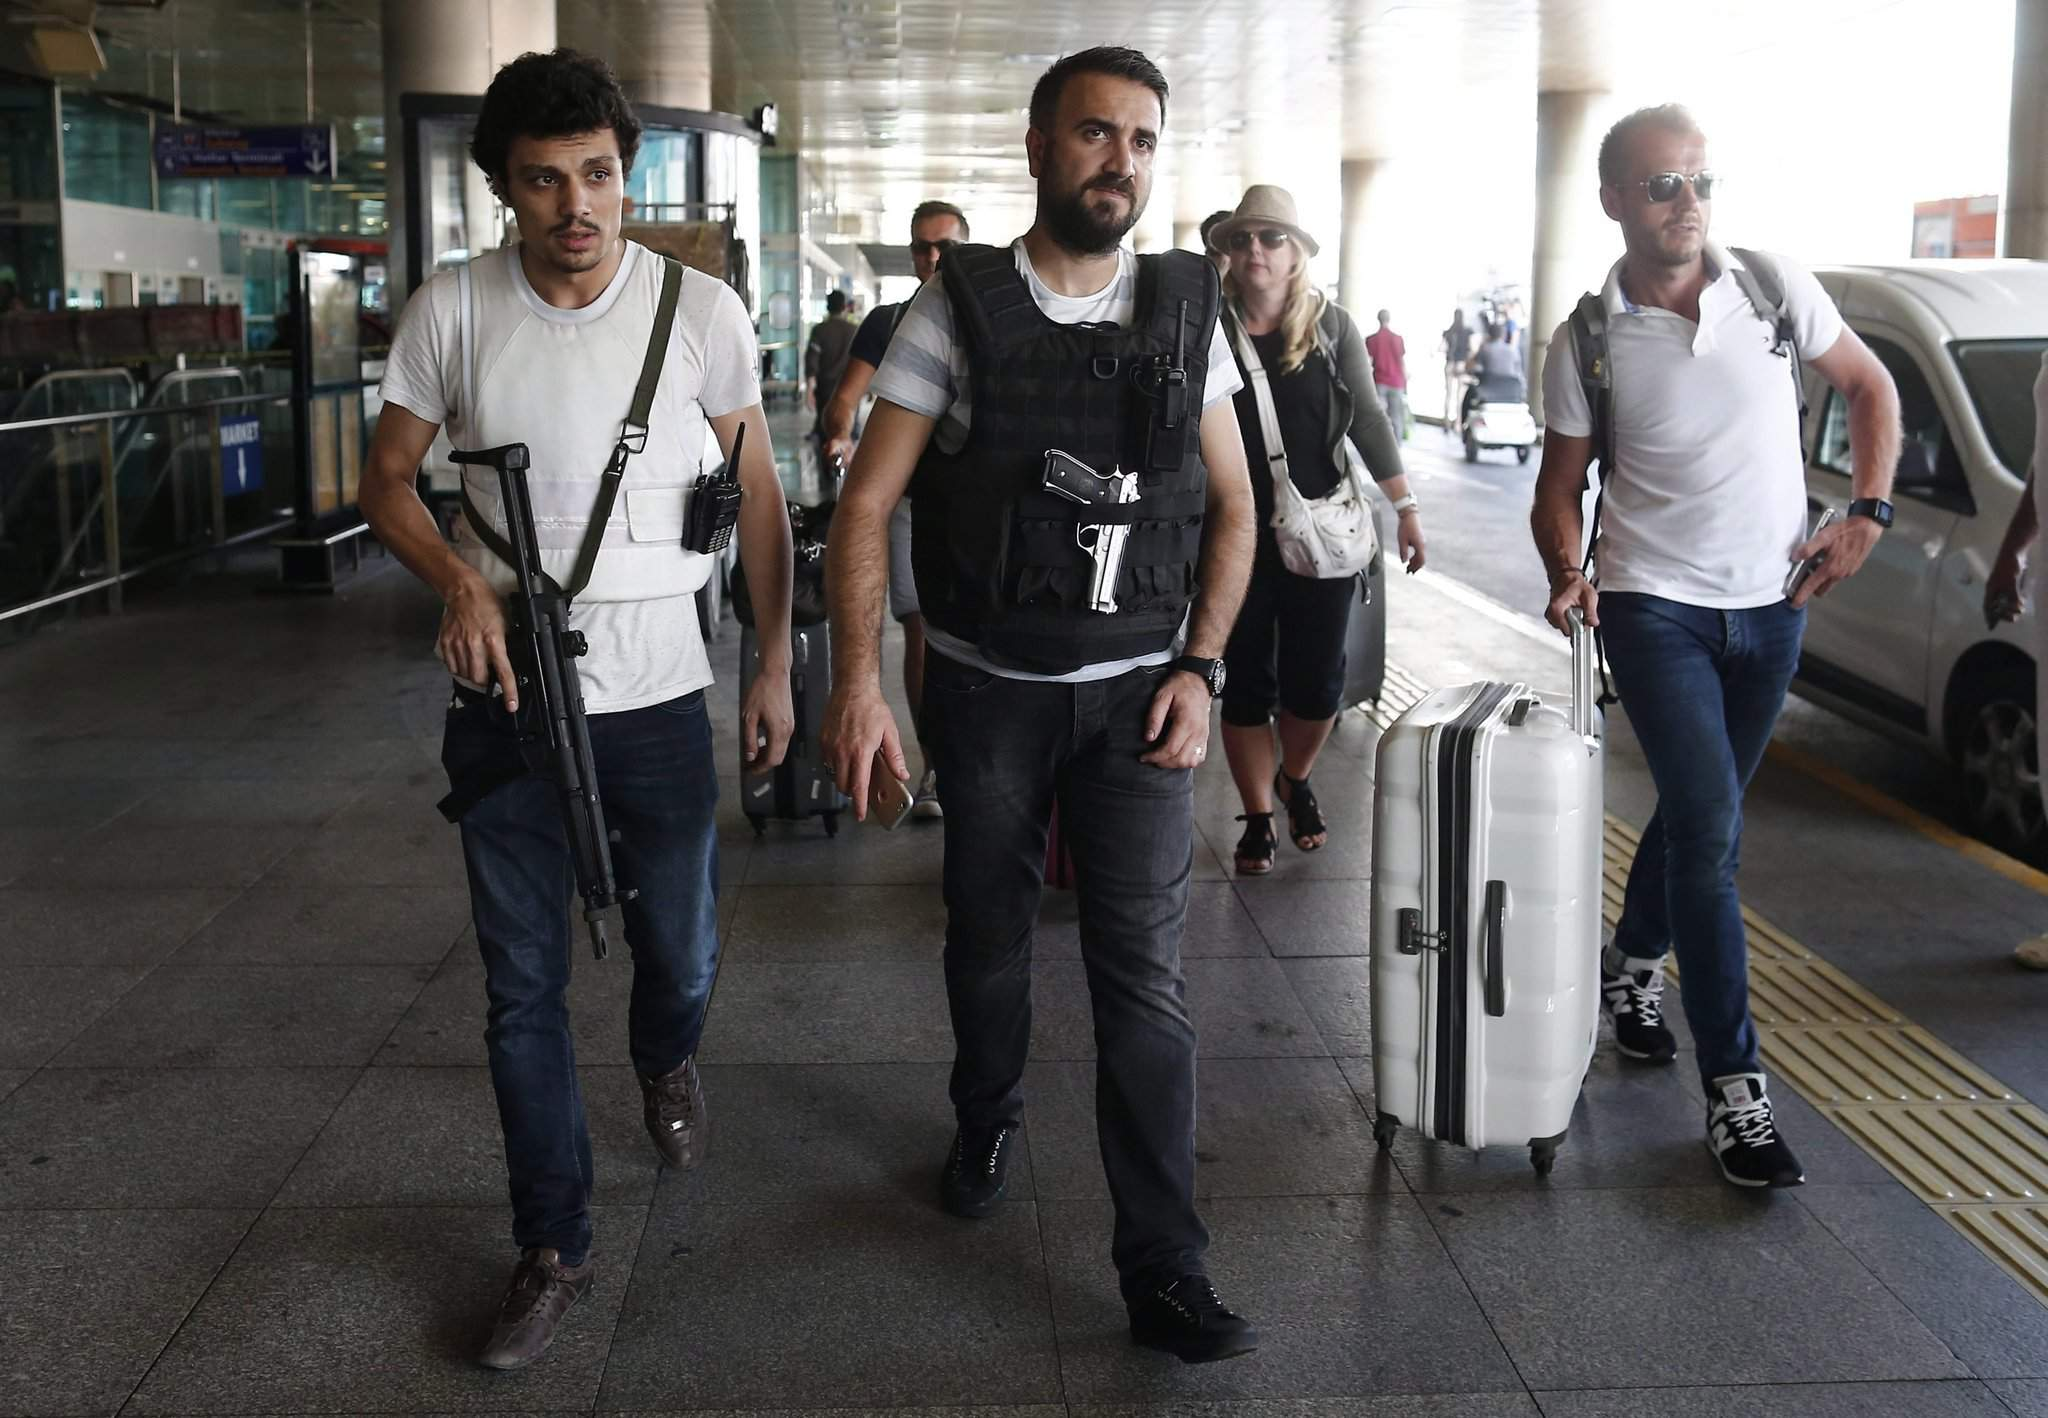 No Hungarians killed or injured in Istanbul airport attack